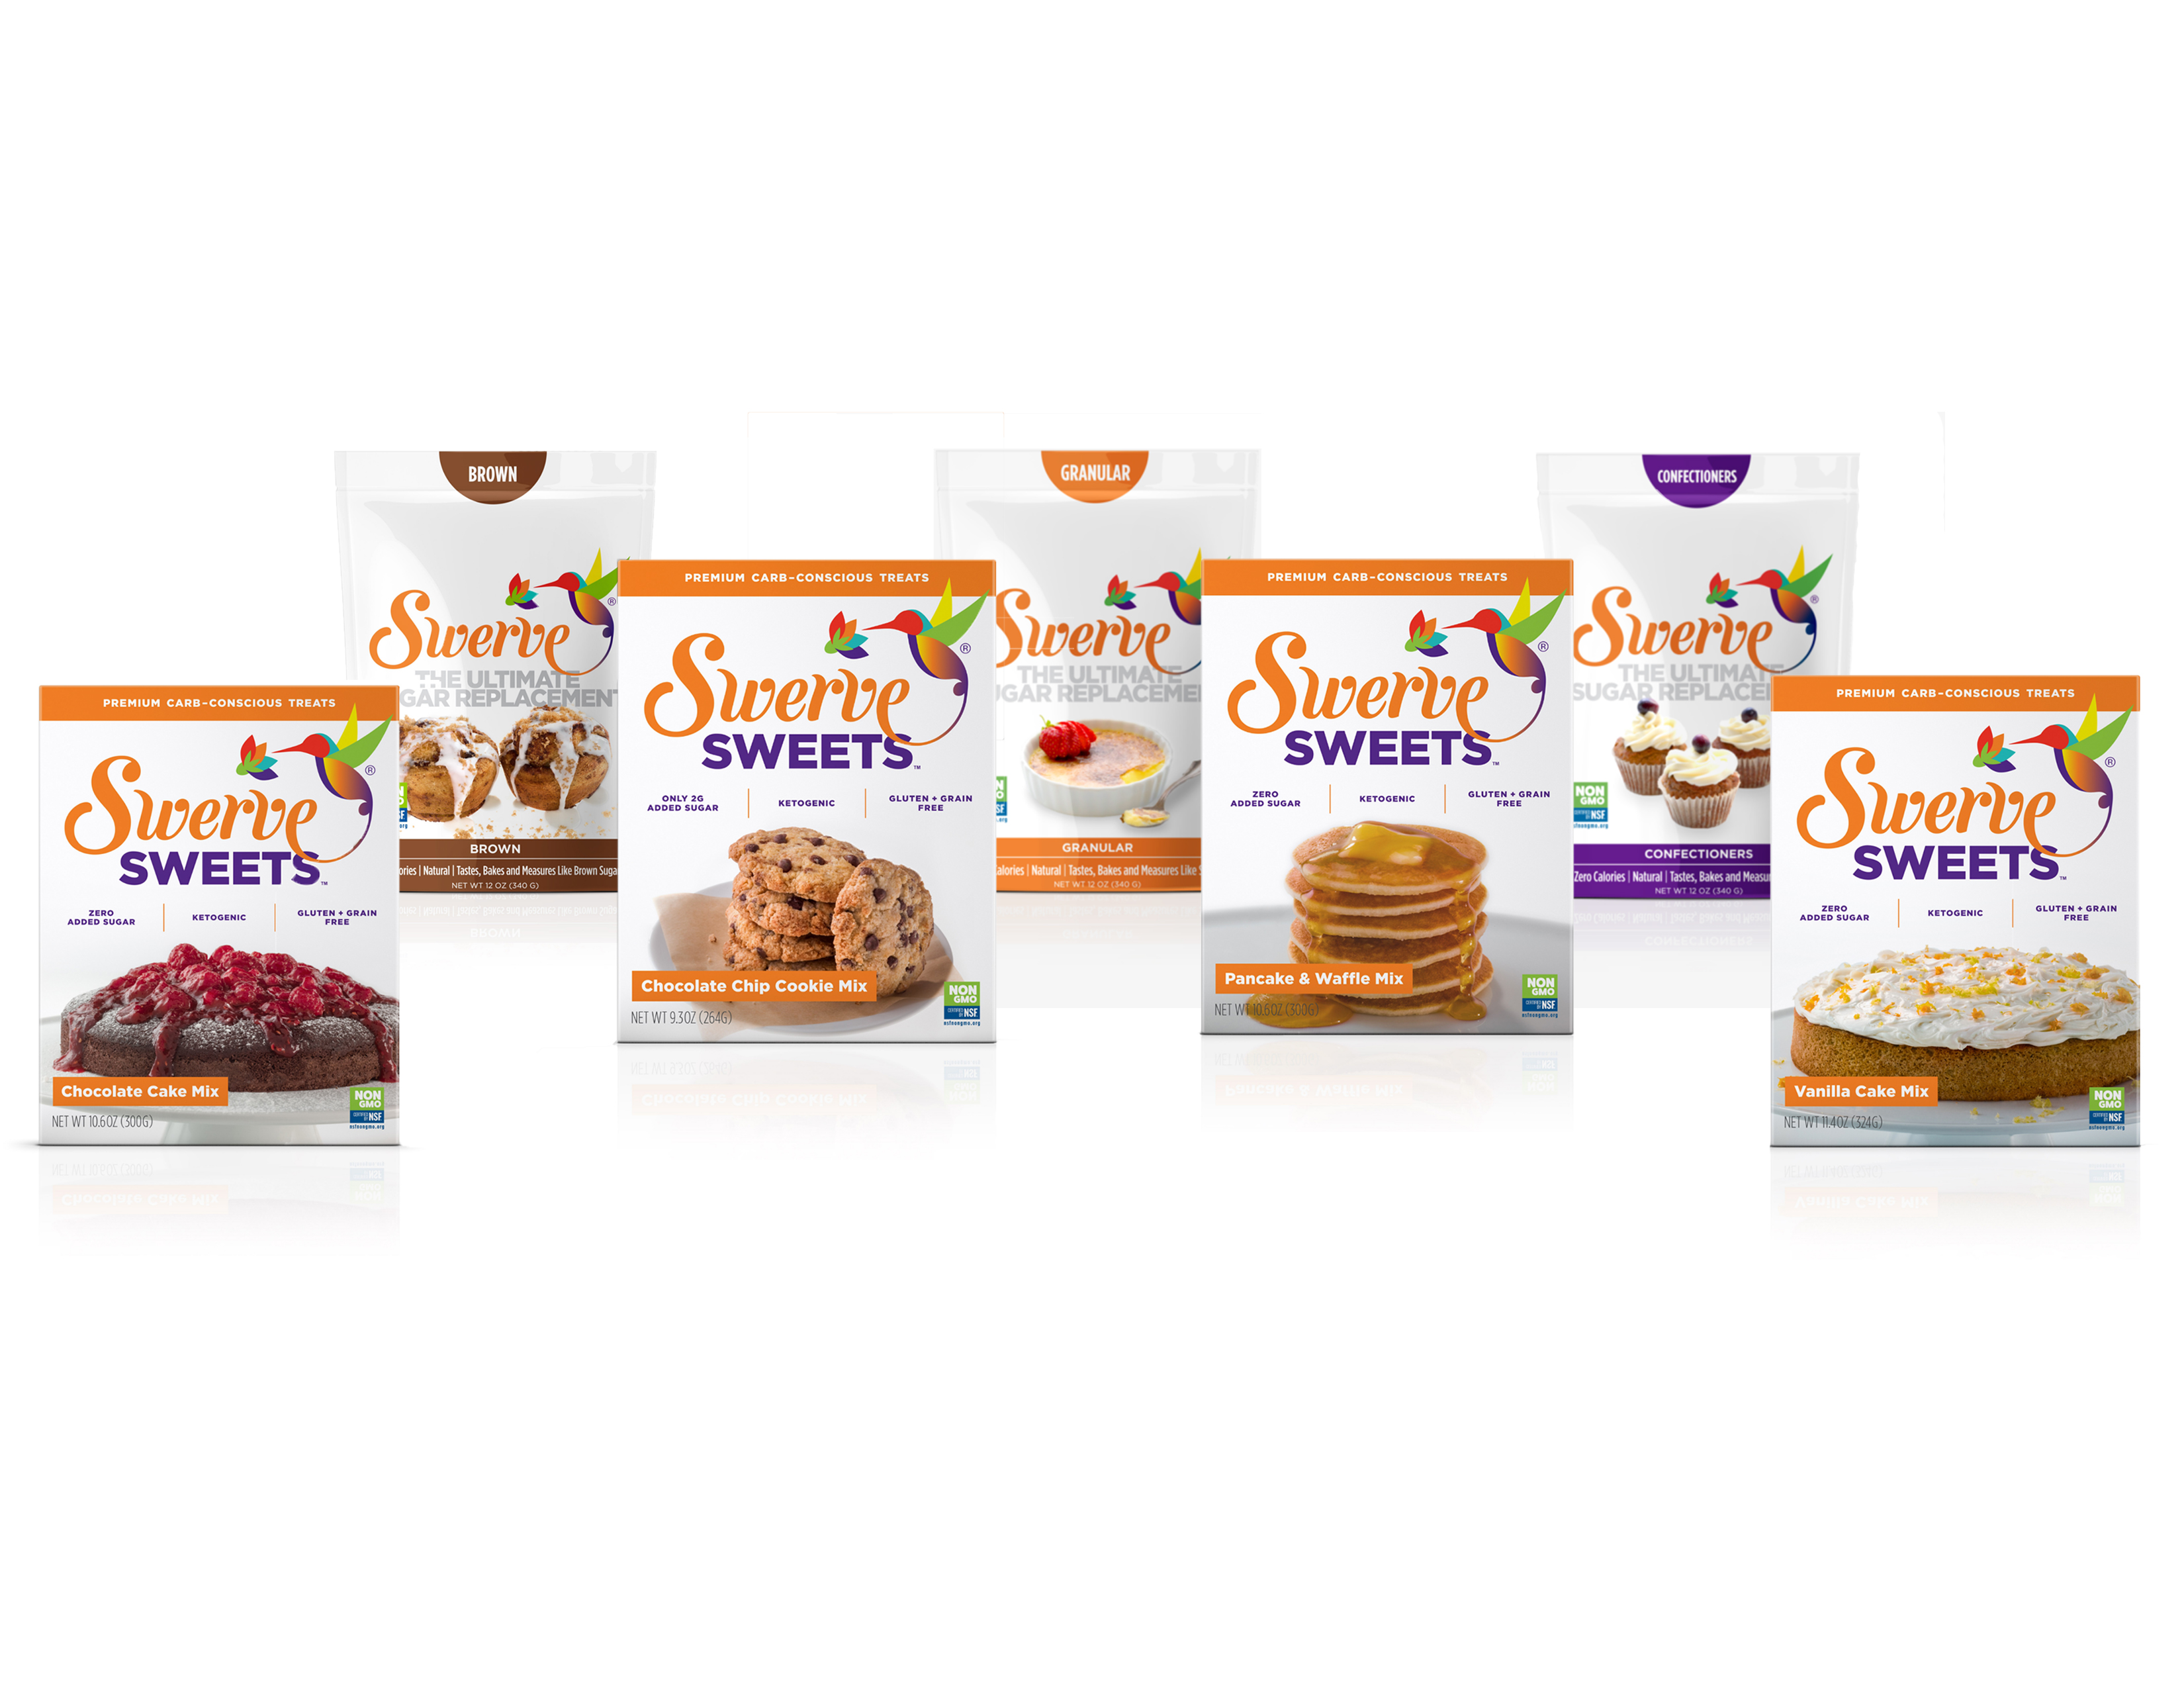 Swerve Launches Five New Carb-Conscious Products for a Smarter Way to Sweet